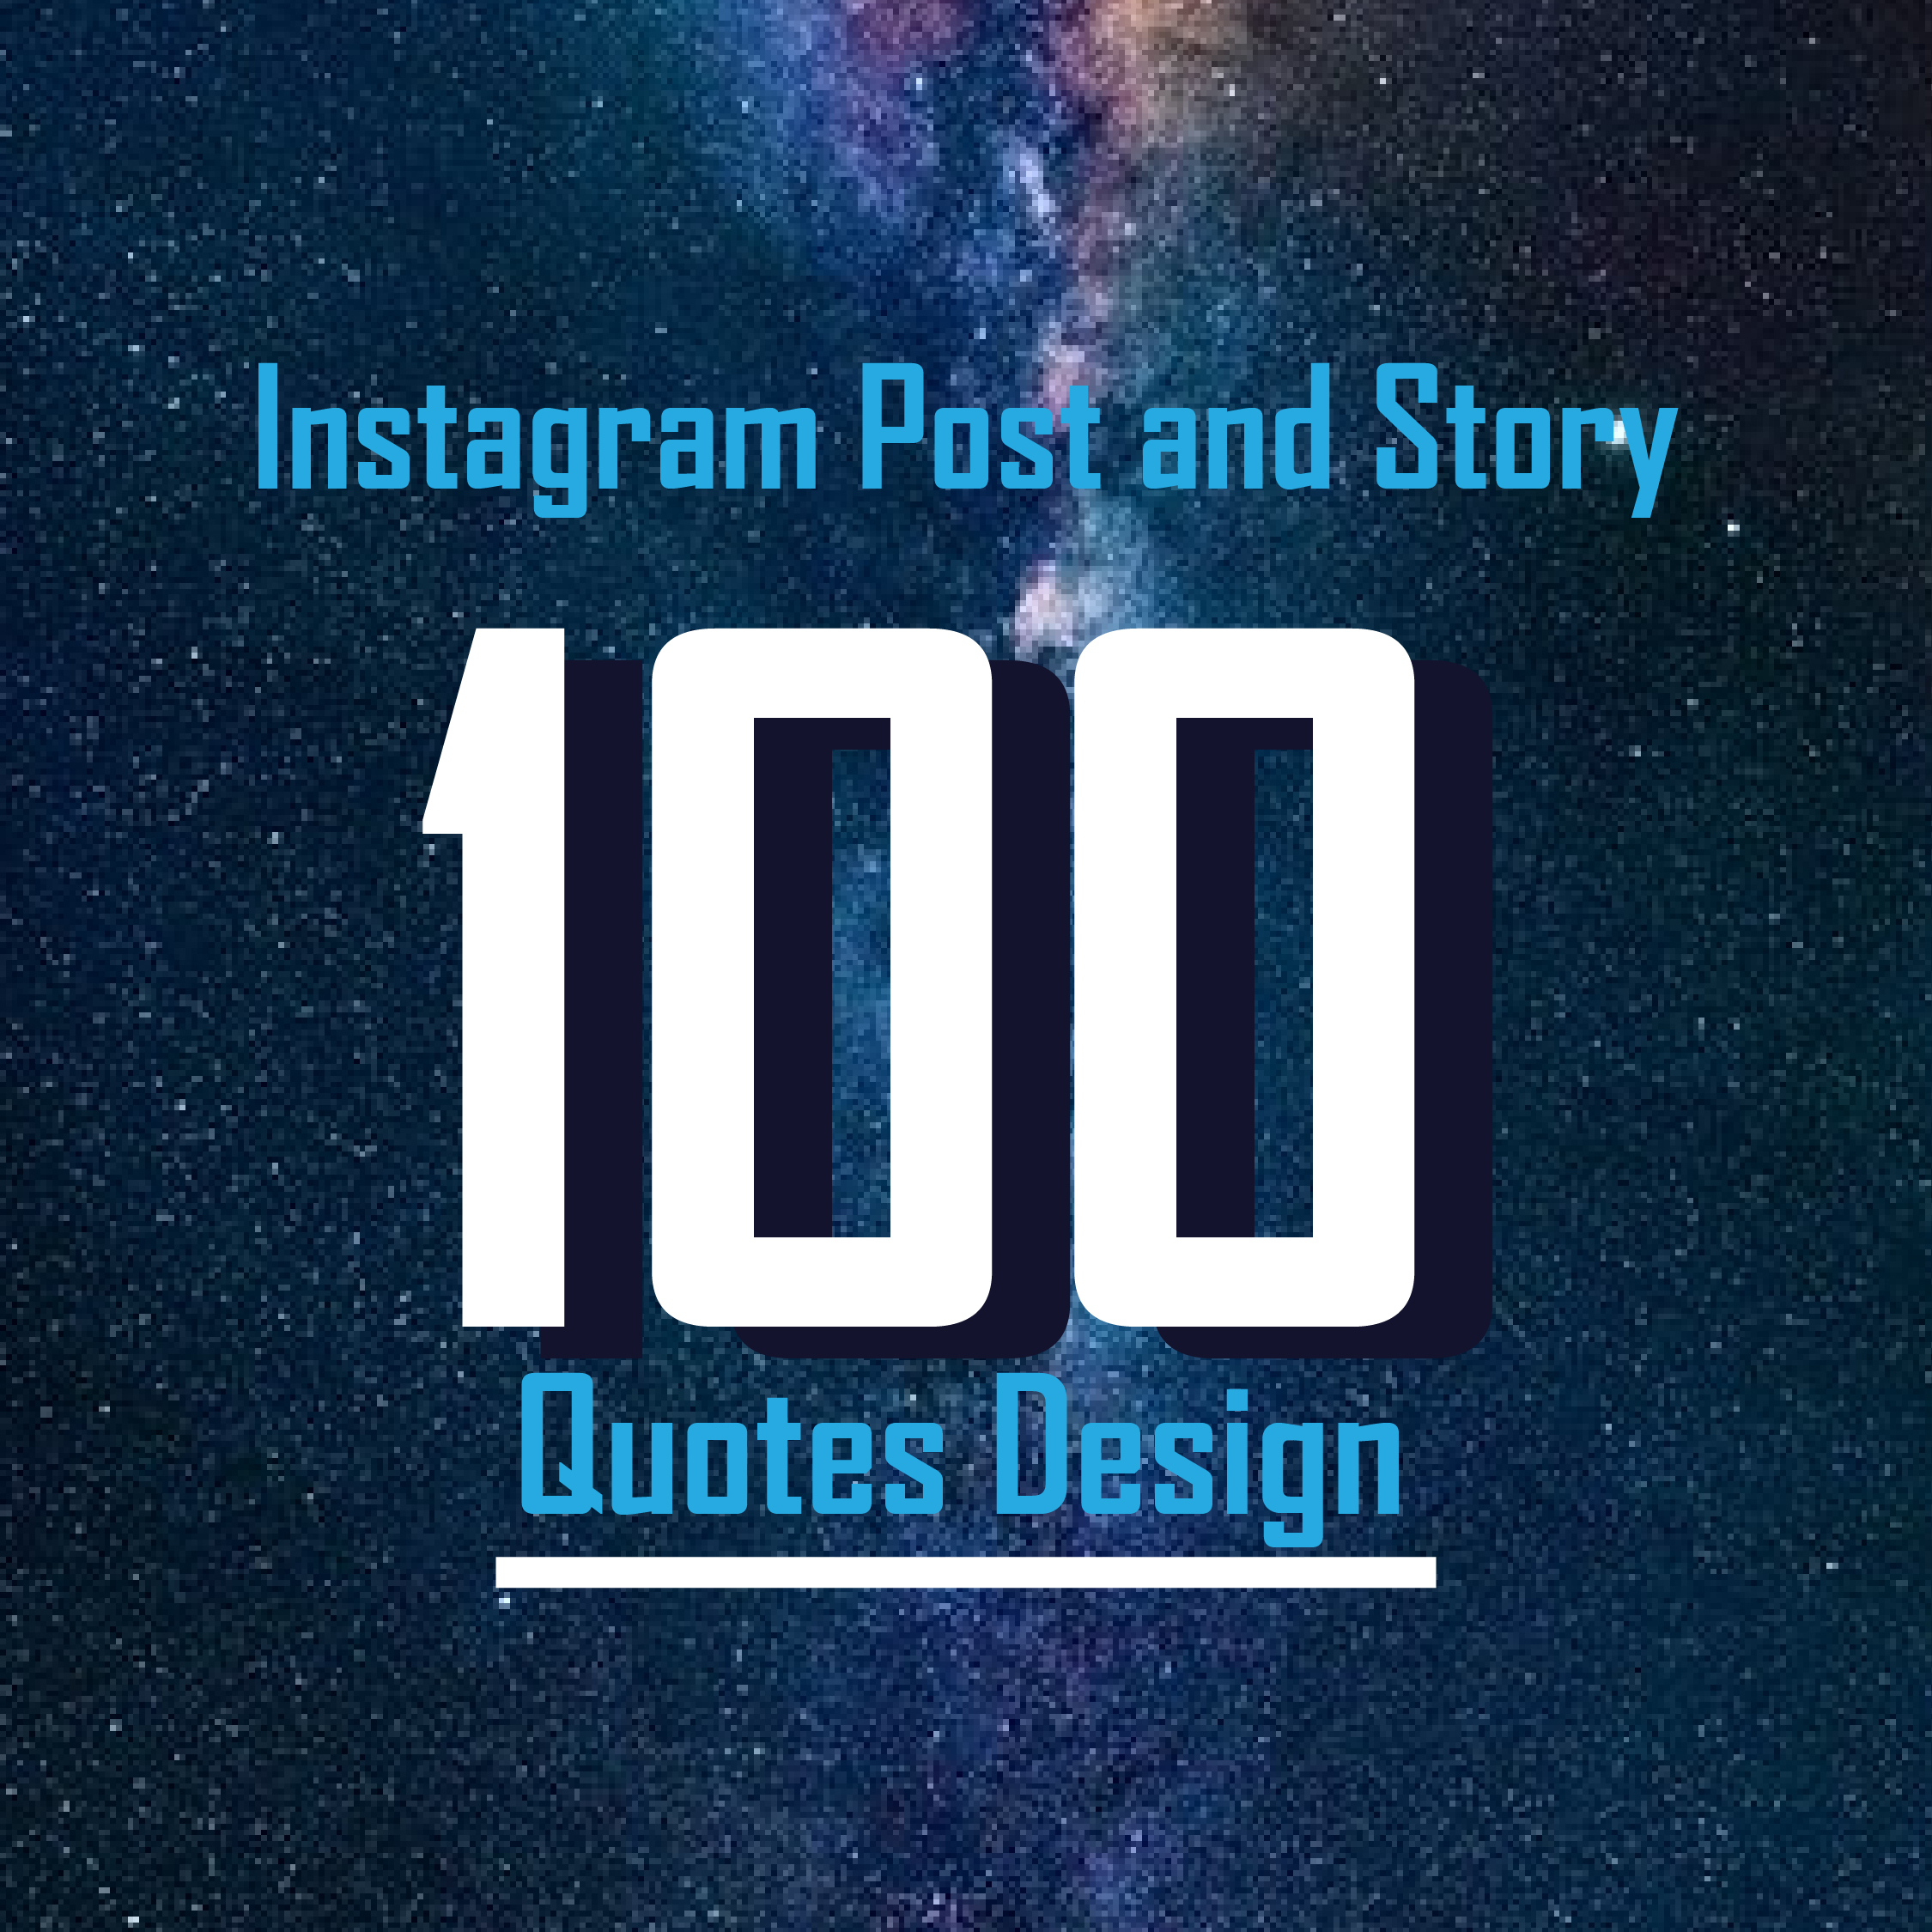 I will design quotes related social post and story